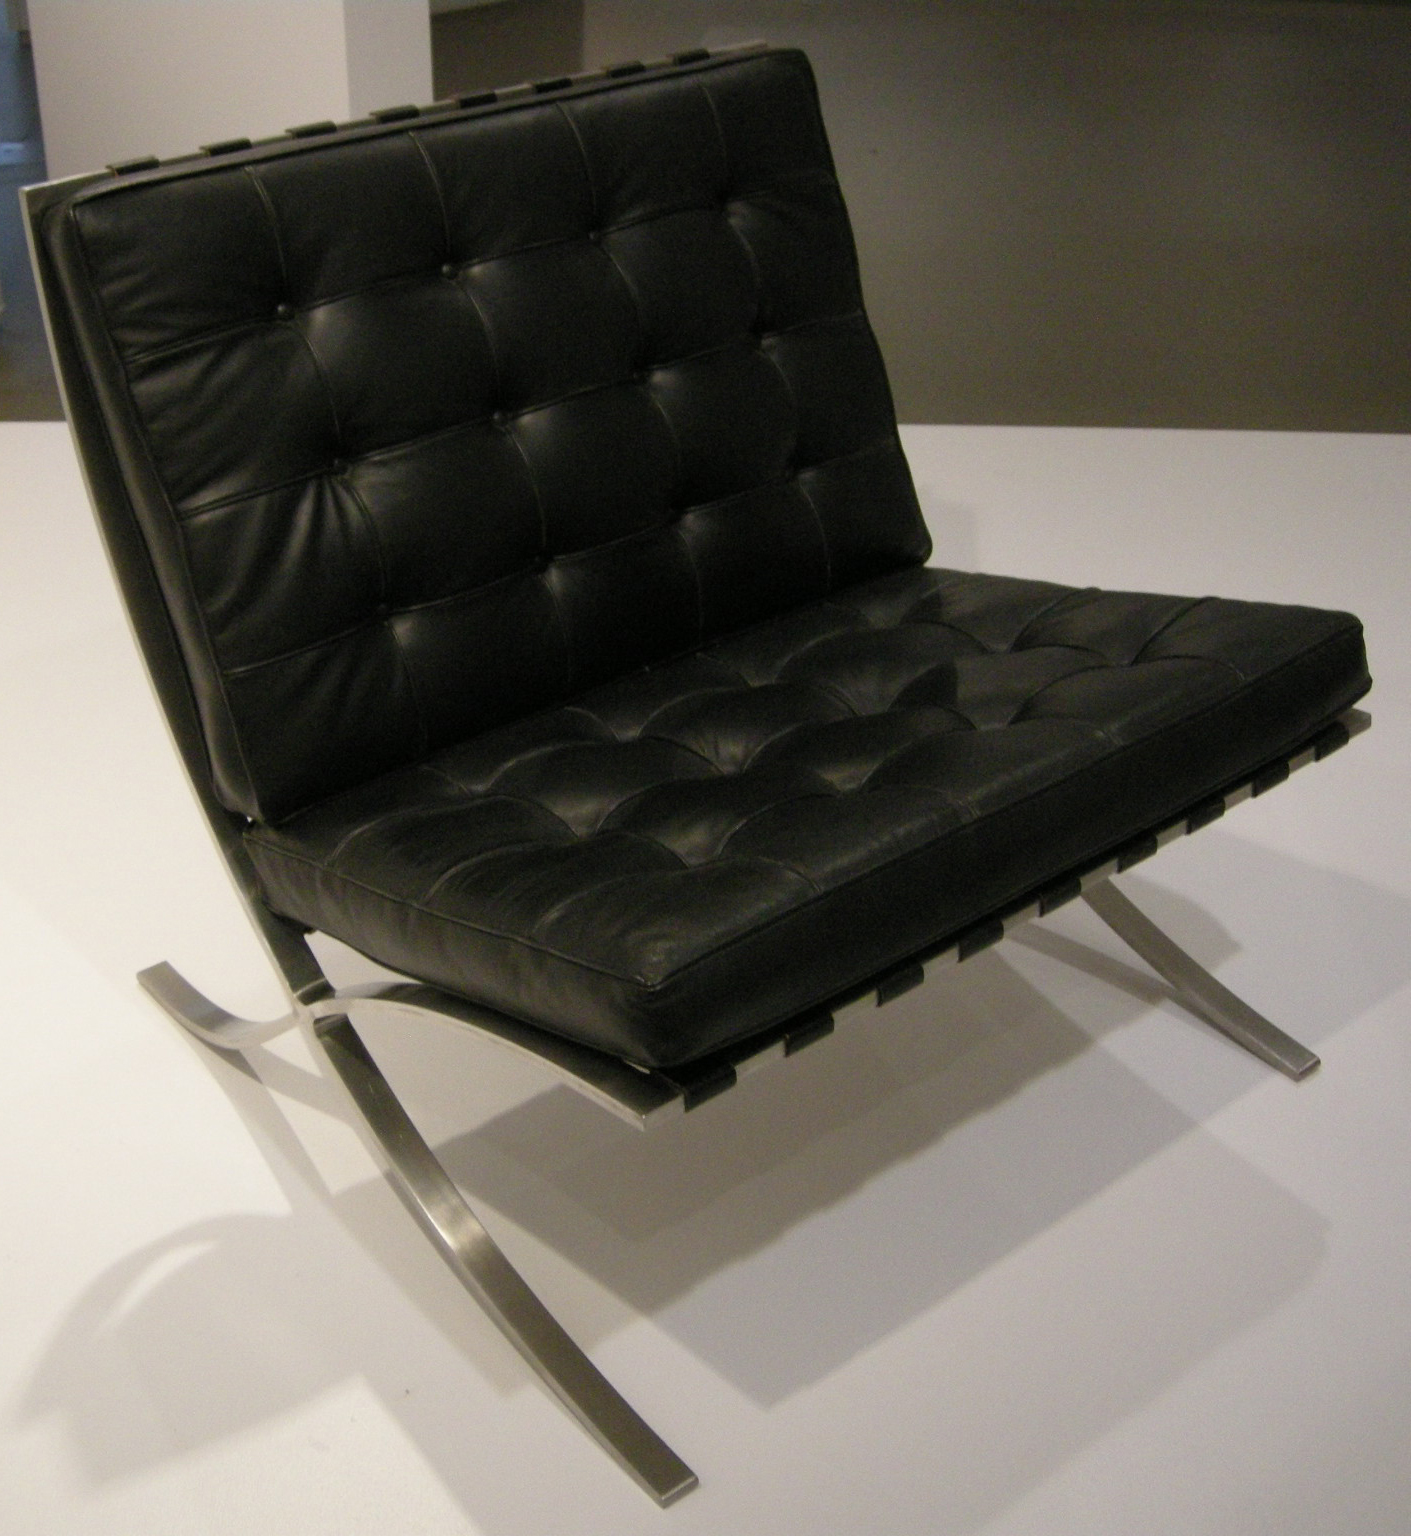 A black Barcelona chair